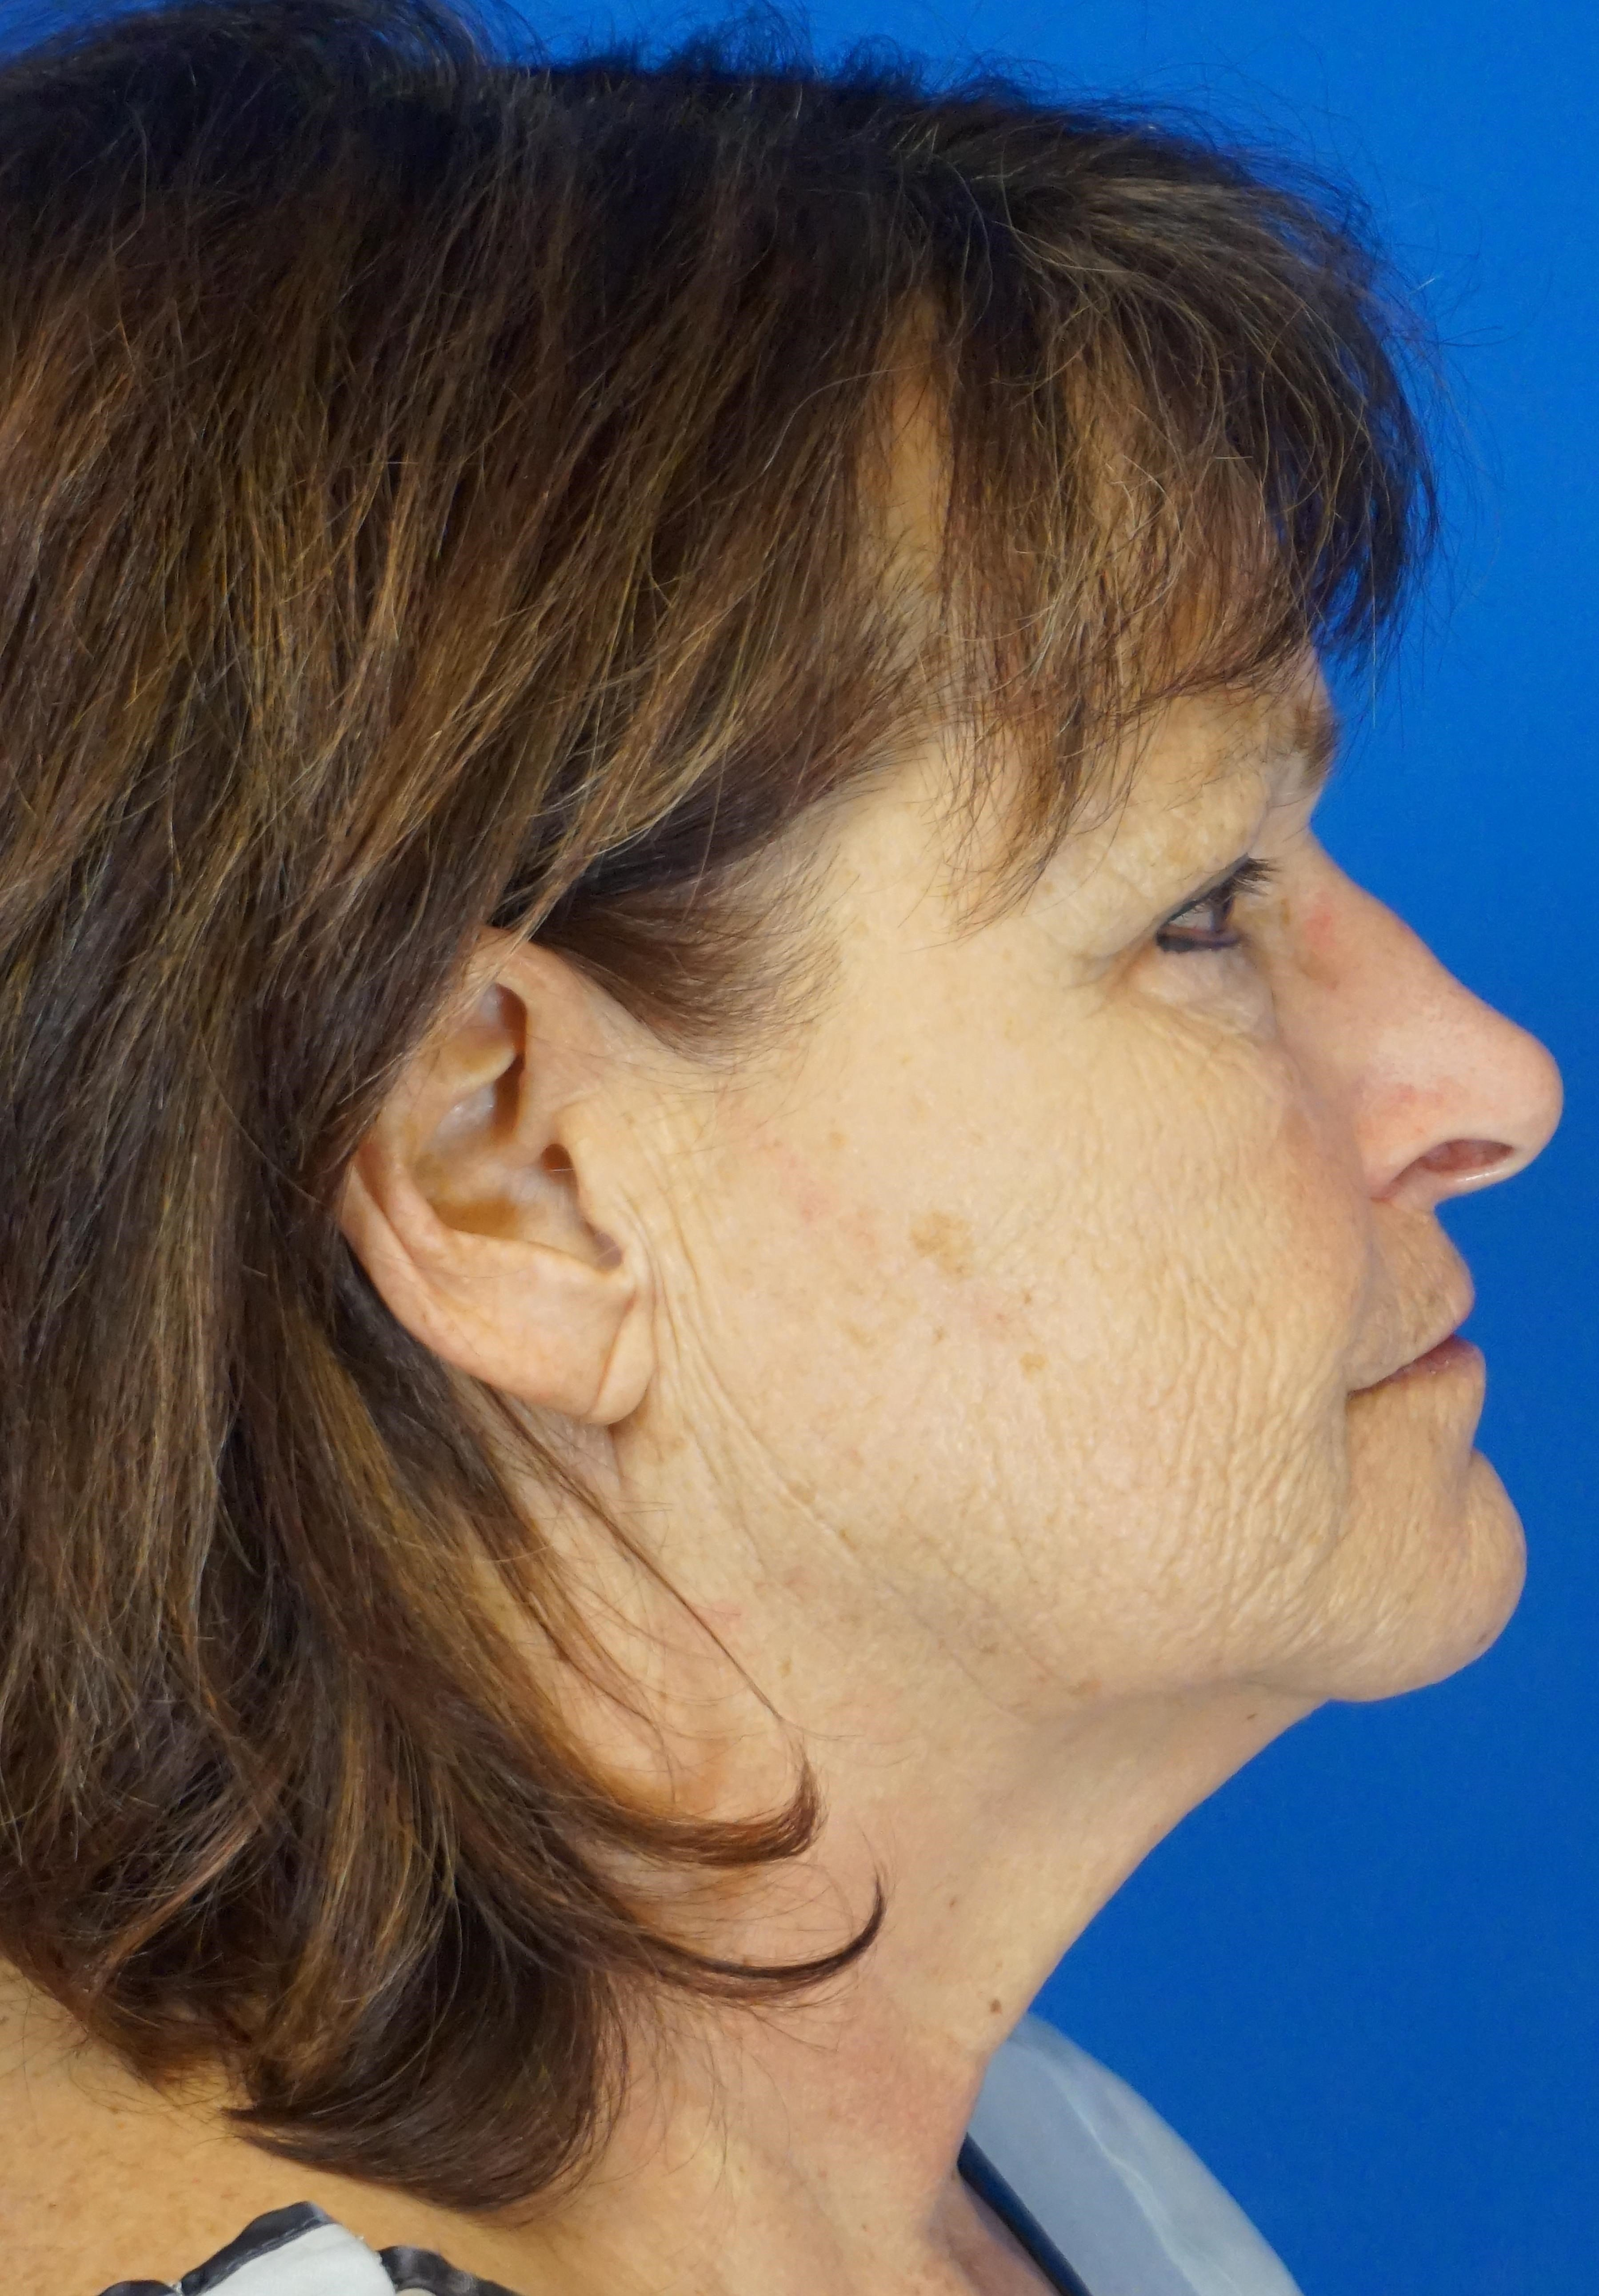 Short Scar Facelift in a 59 year-old Valparaiso, IN female in